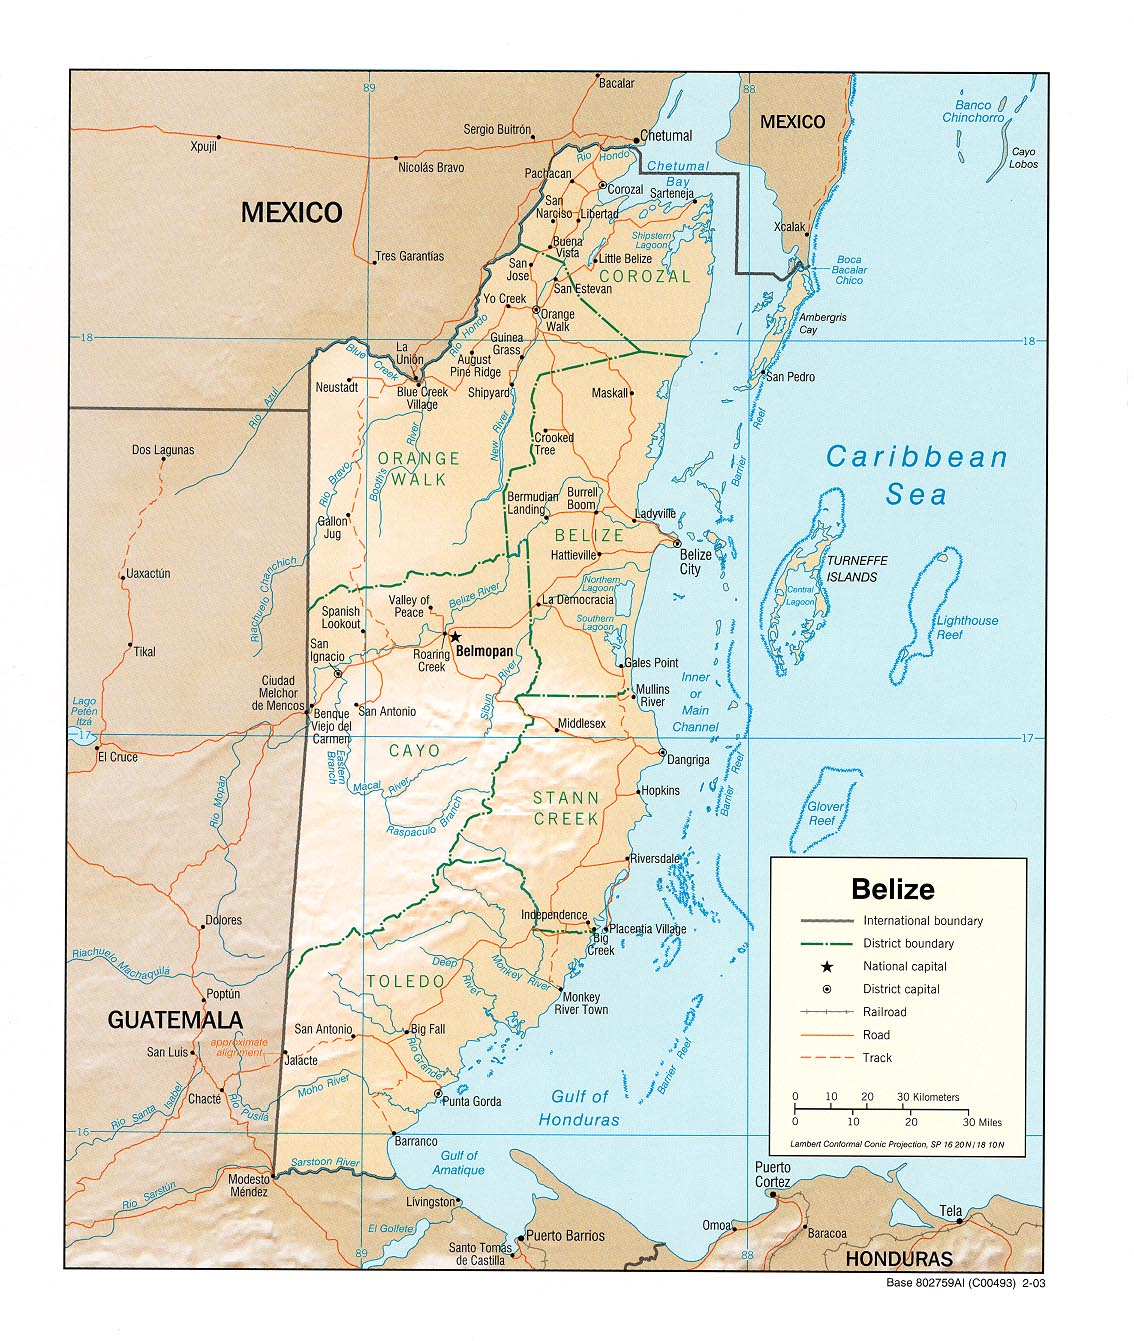 Maps Of Belize District Maps Of Belize City And Town Maps Of Belize Belize Real Estate